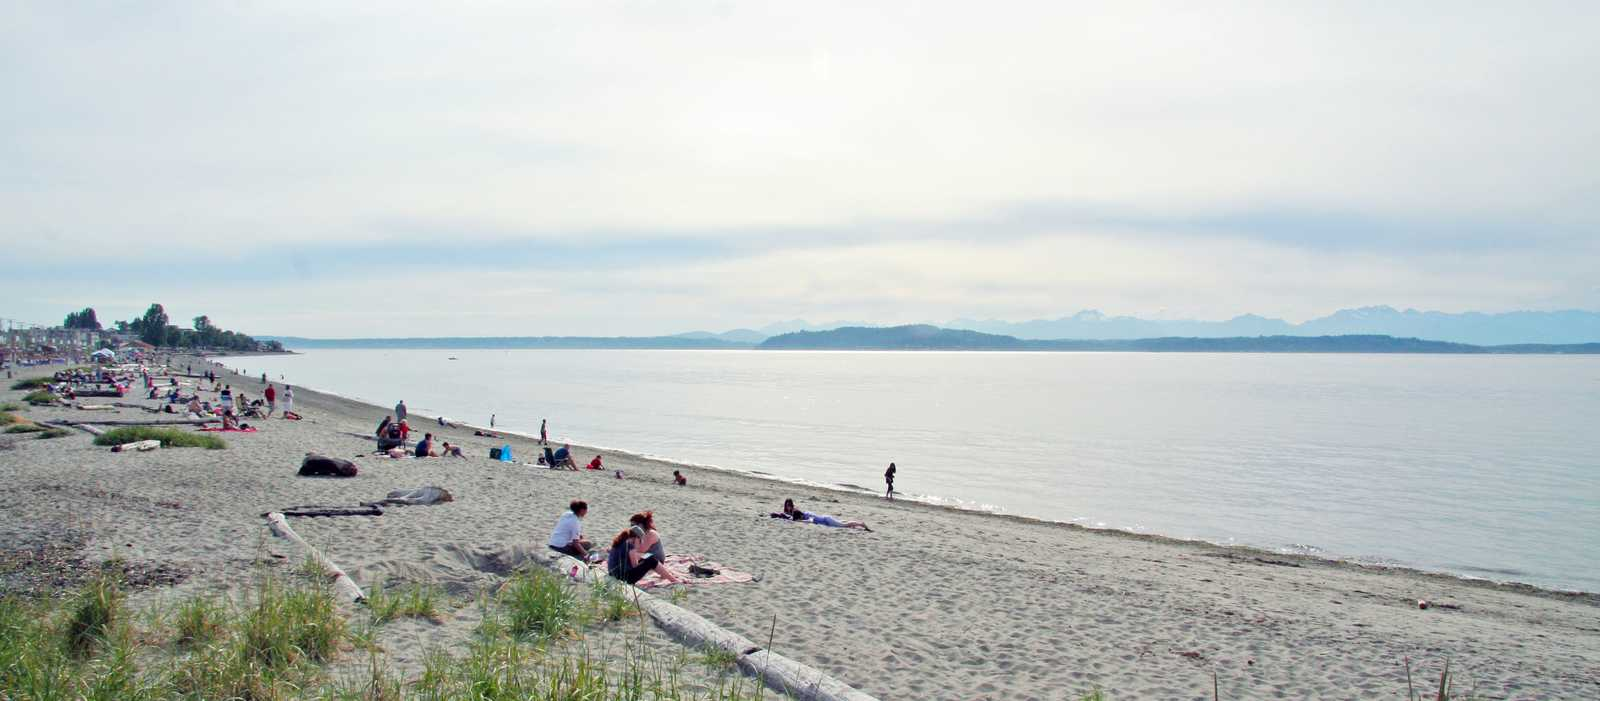 Strandtag am Alki Beach